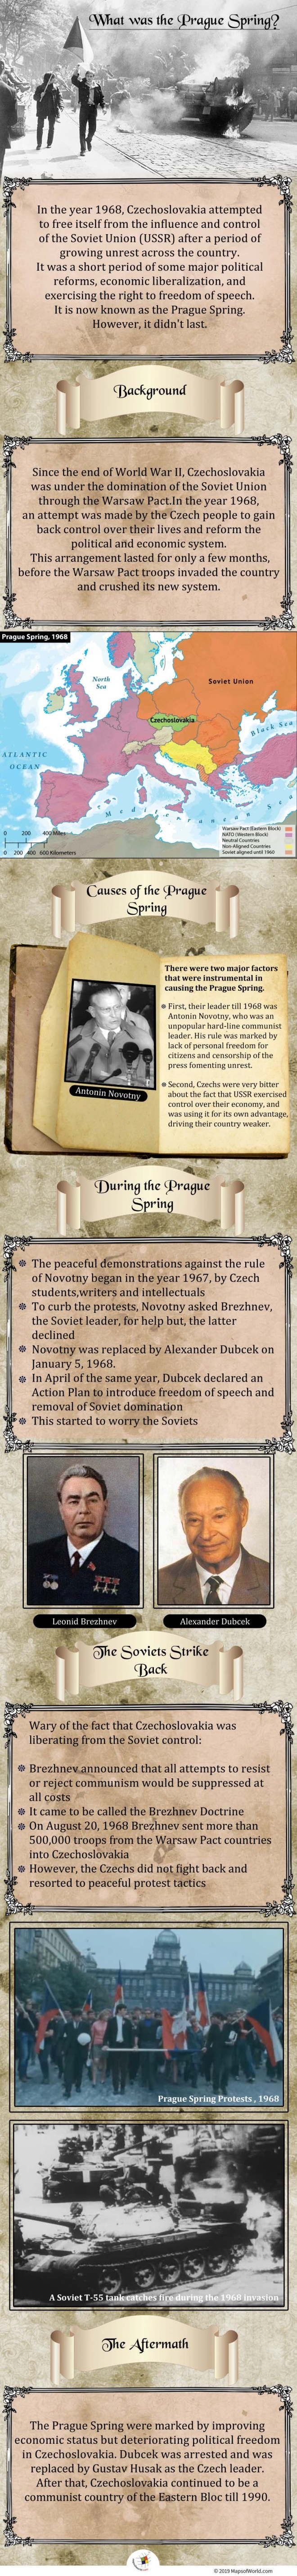 Infographic Giving Details on The Prague Spring